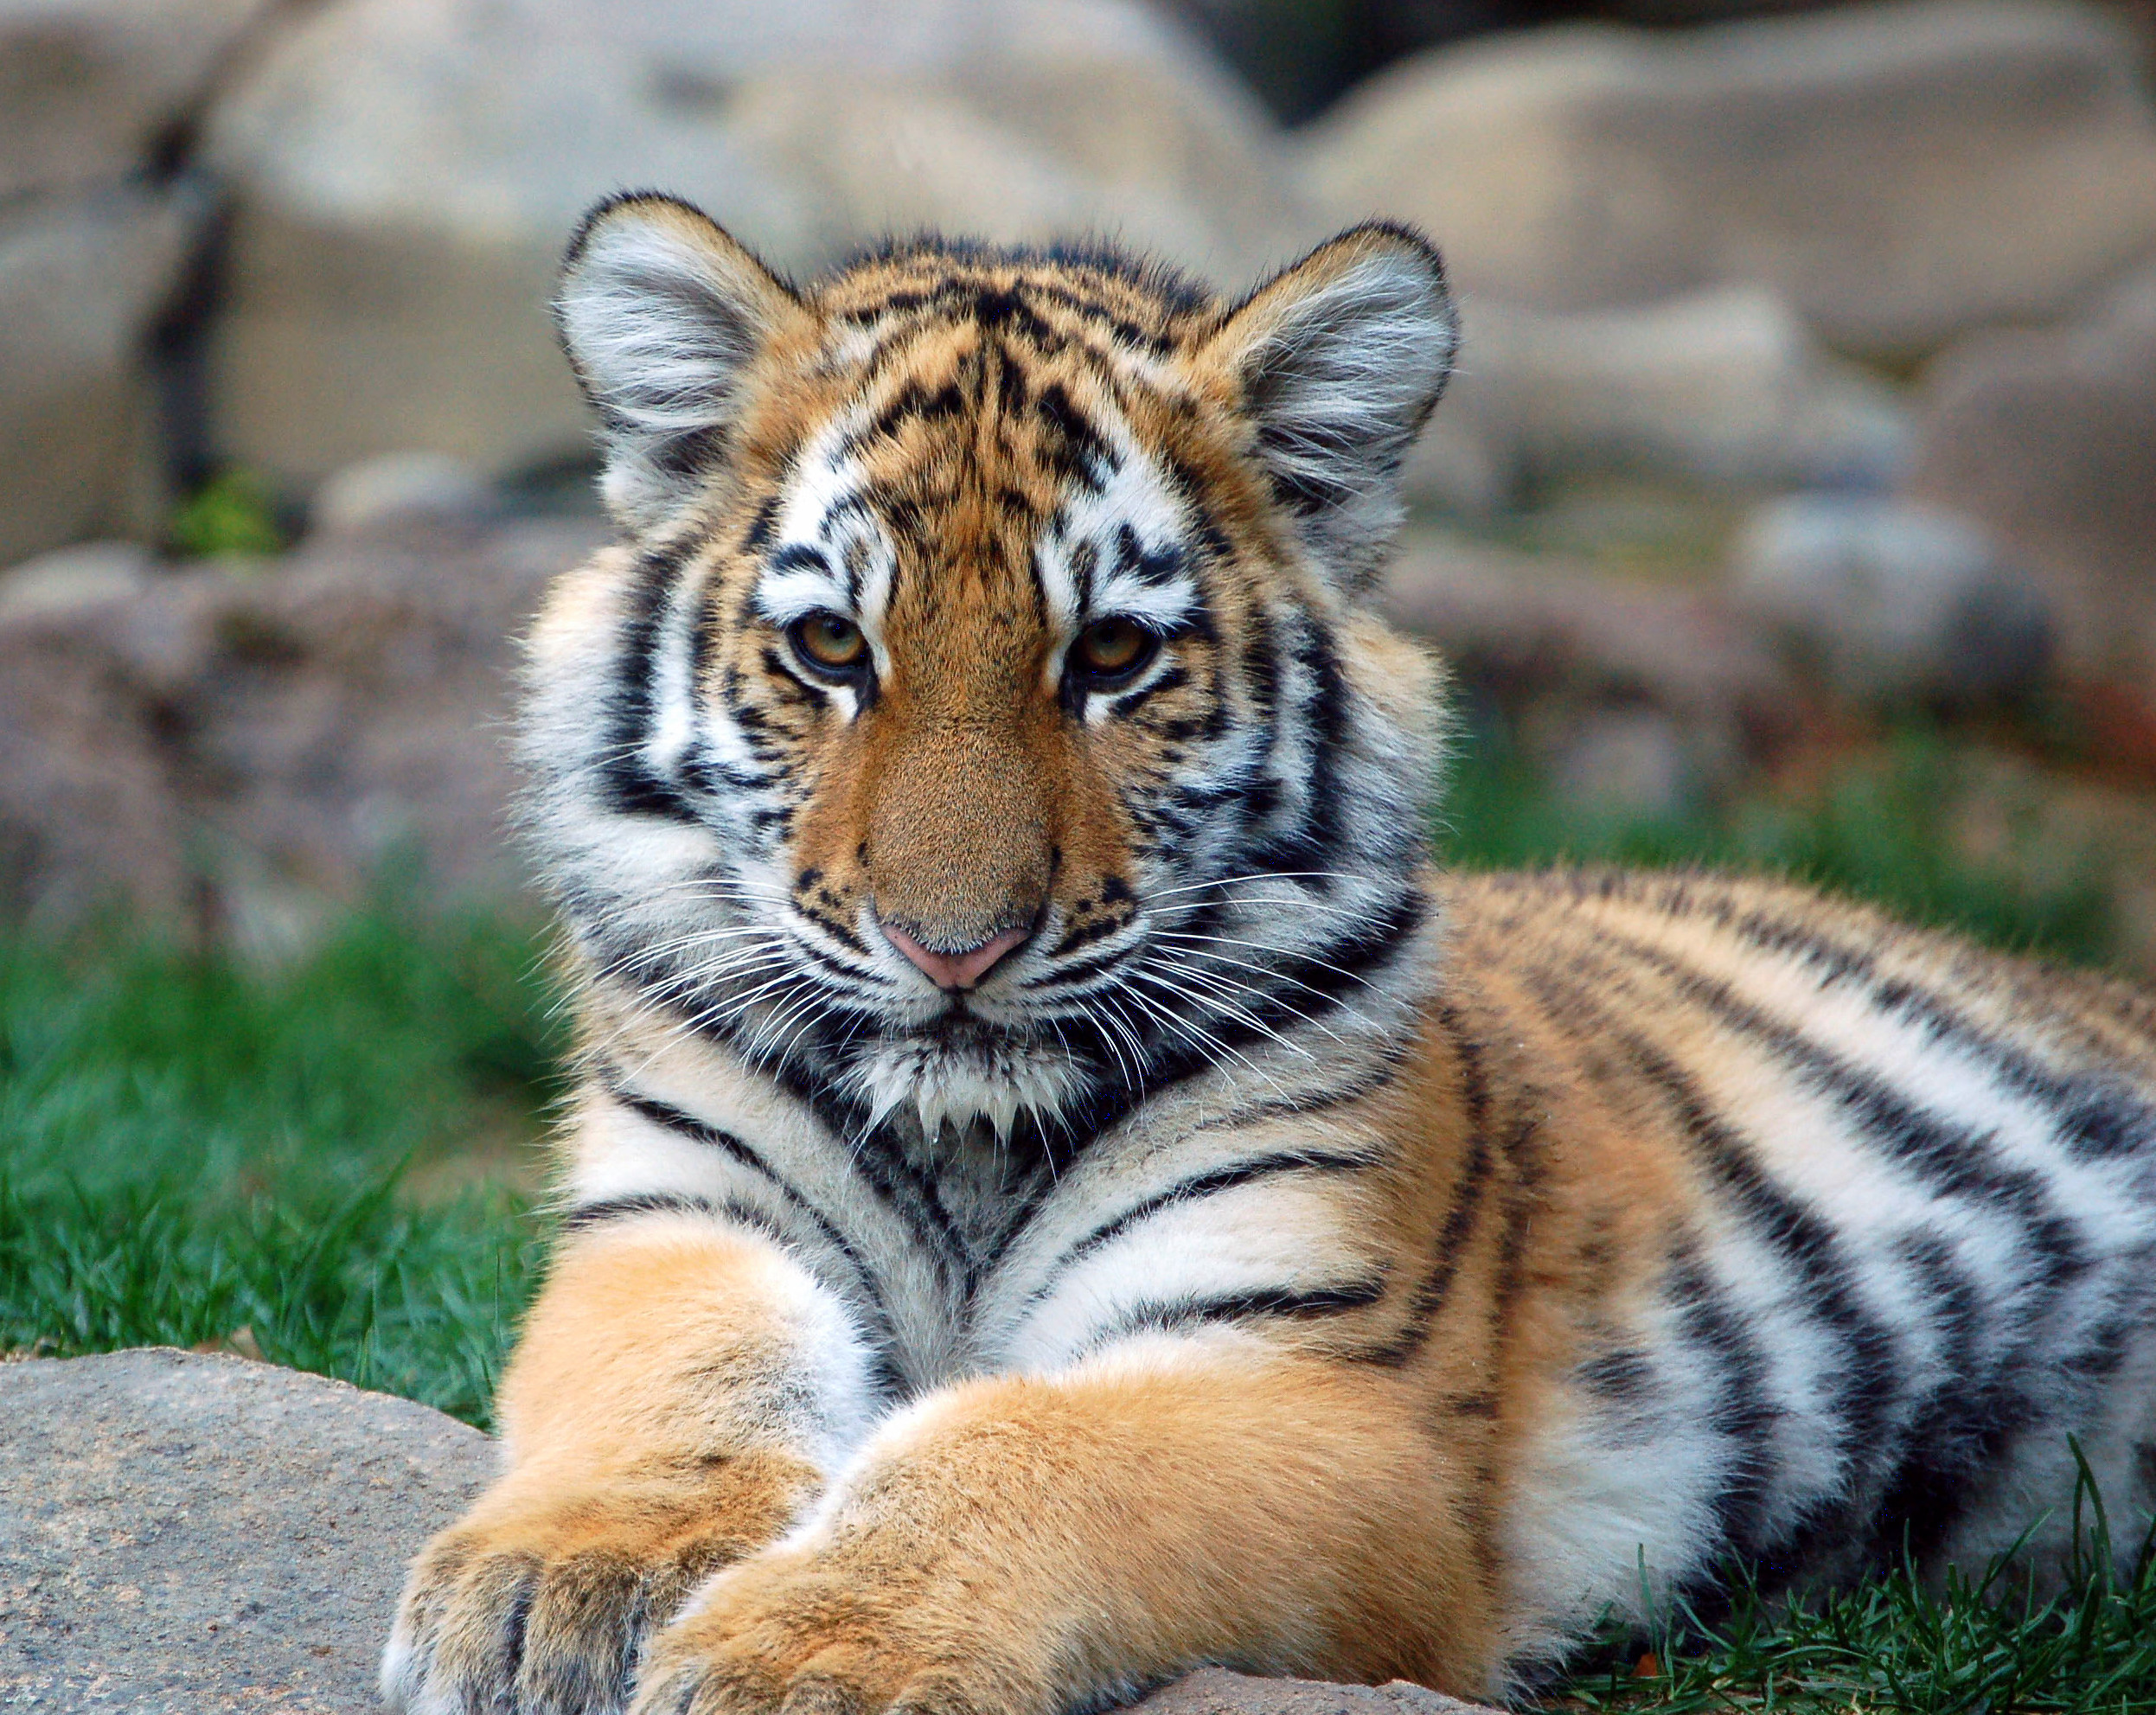 Small Animals, Tiger Wallpaper 71.47 Kb